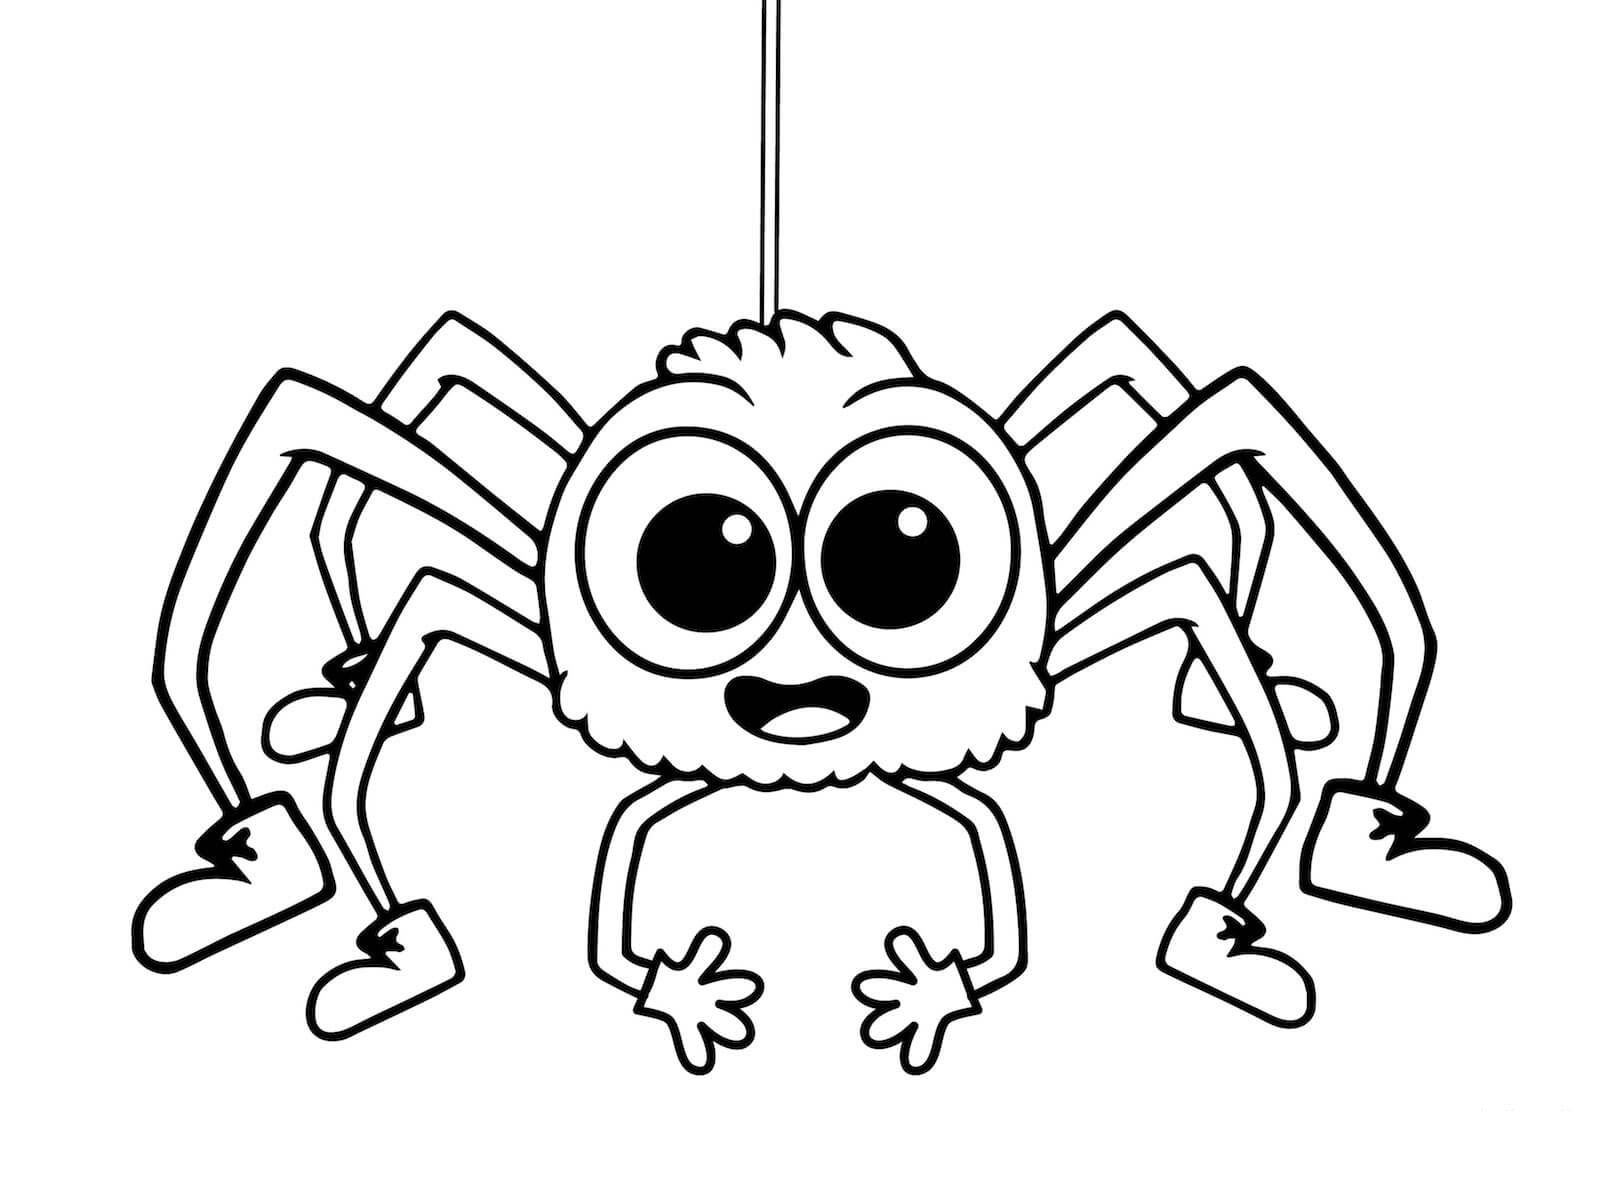 Uncategorized Itsy Bitsy Spider Coloring Page pin by digi juf mj on herfst spinnen kleurplaten pinterest incy wincy spider coloring page from itsy bitsy category select 26983 printable crafts of cartoons nature animals